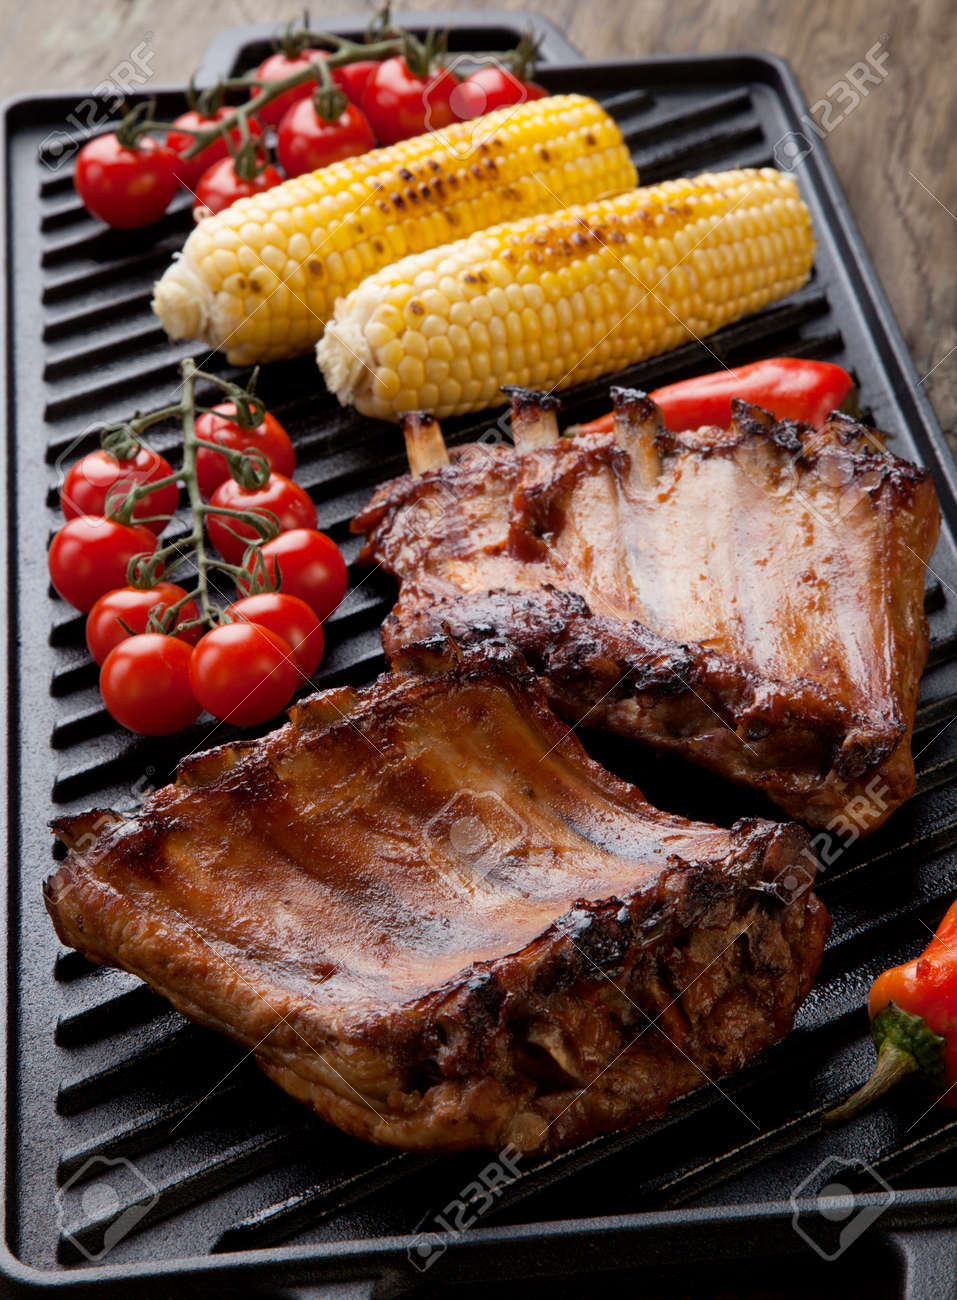 Grilled pork ribs on griddle with chili pepper, cherry tomatoes, and grilled corn - 162557497